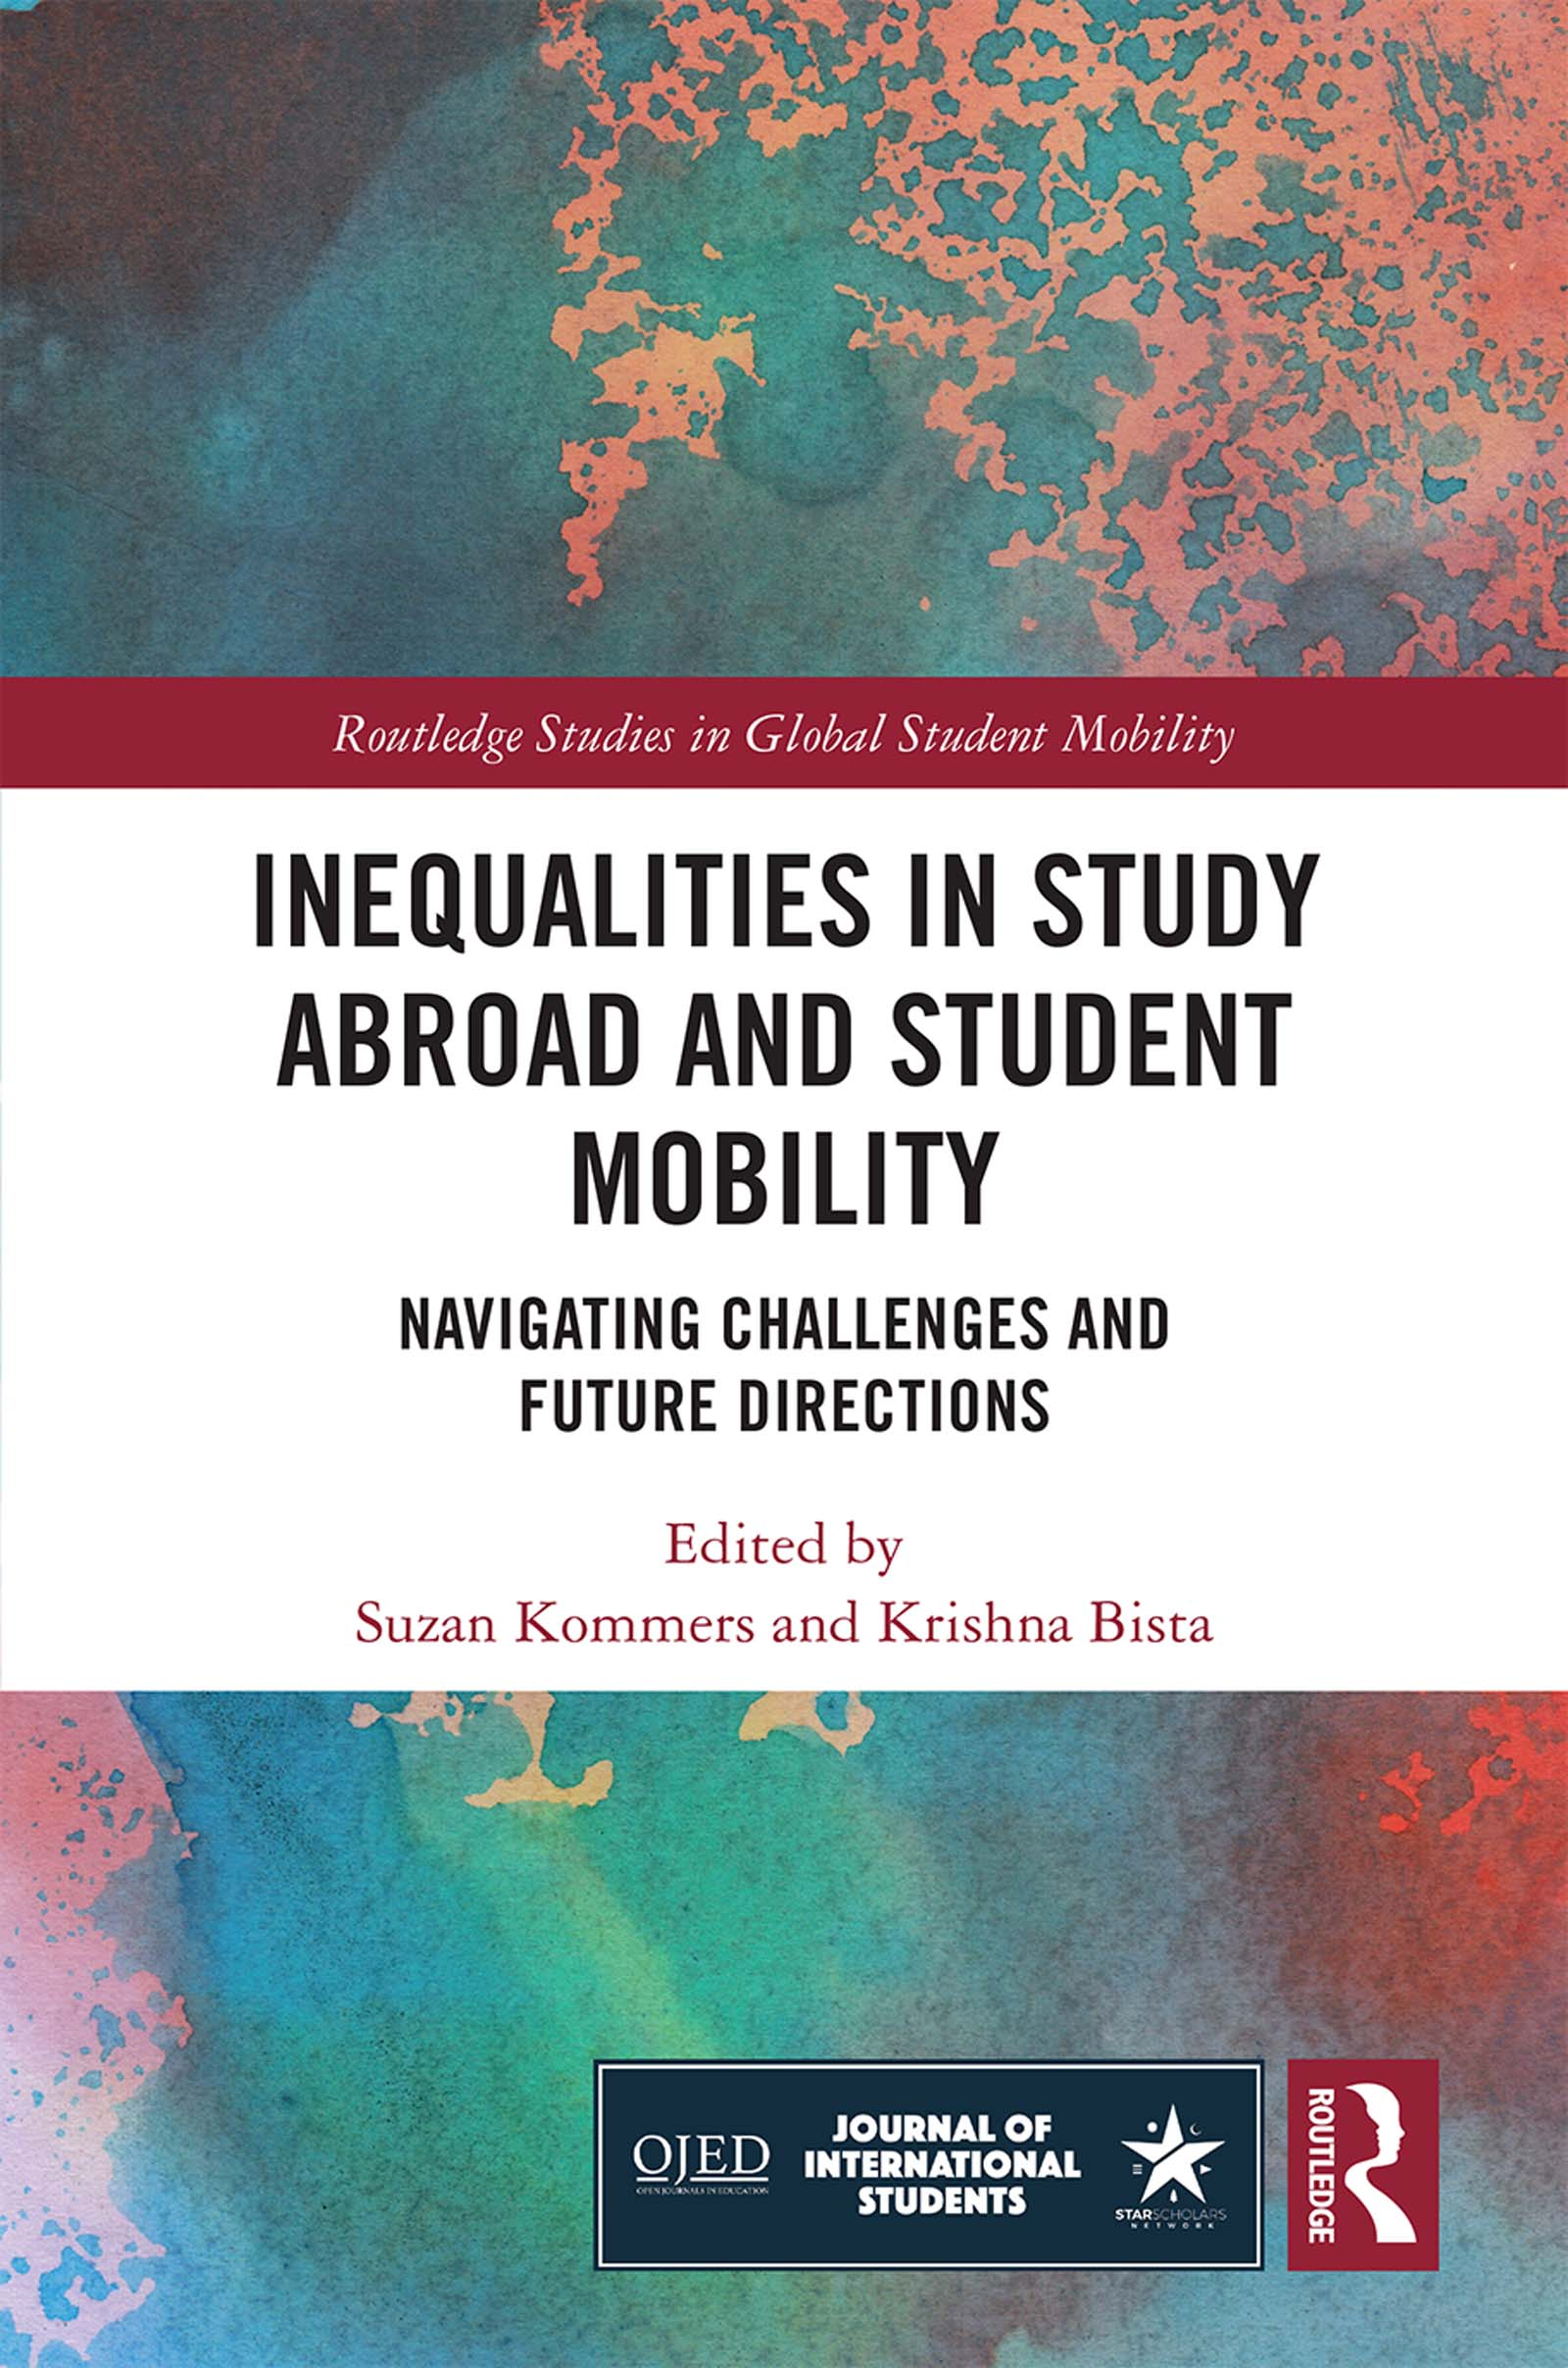 Inequalities in Study Abroad and Student Mobility